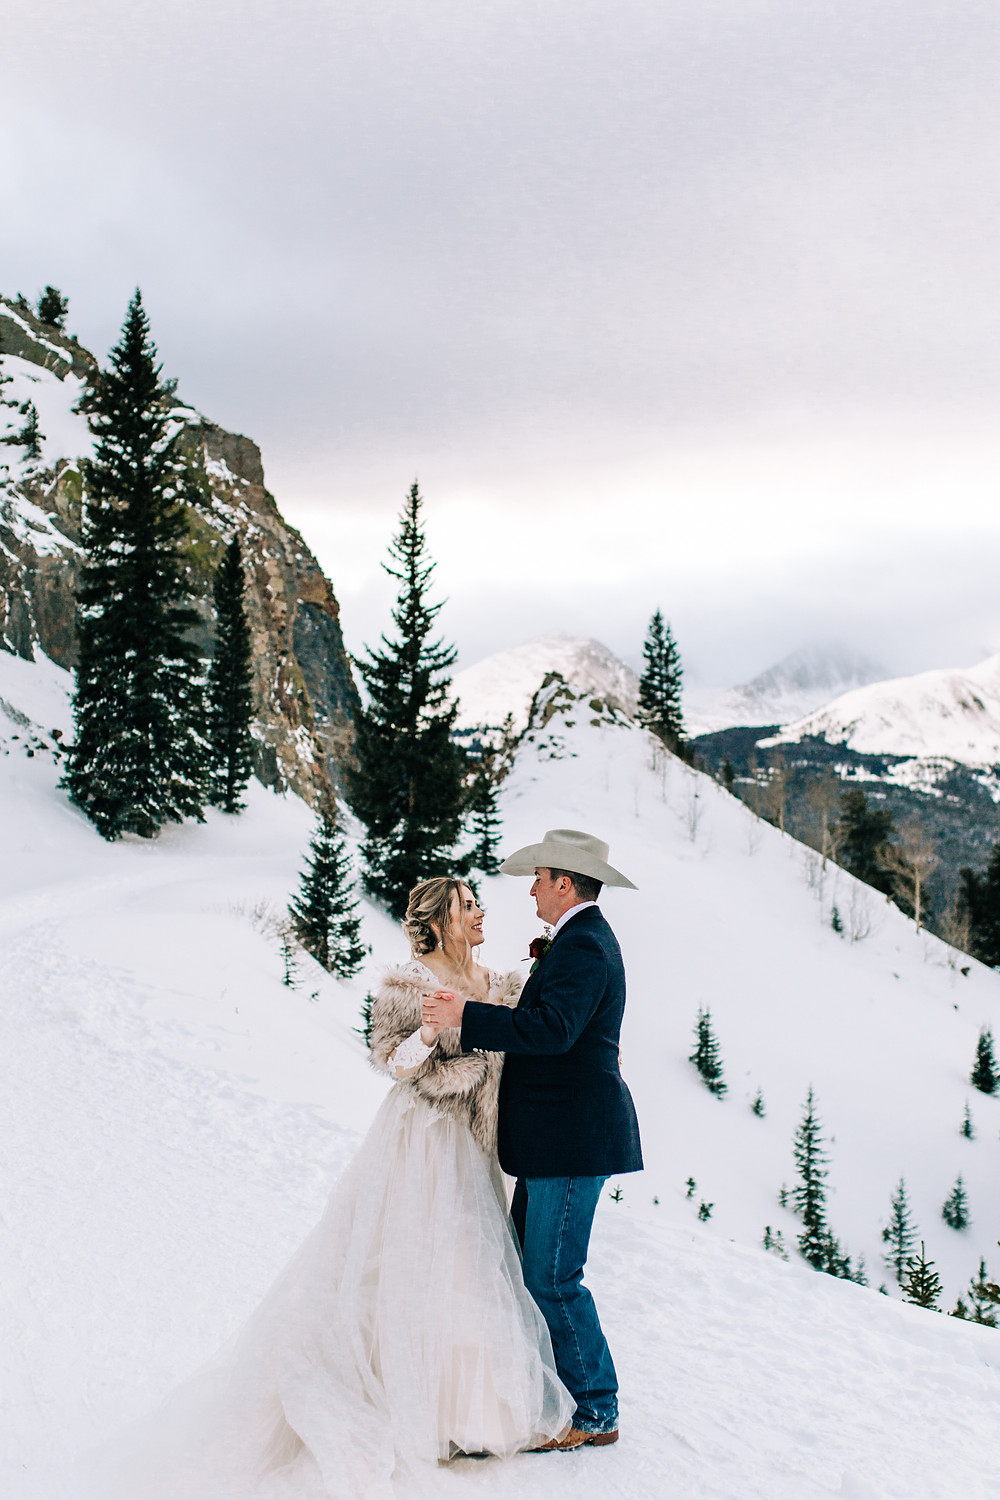 The Lodge at Breckenridge Wedding - Breckenridge Wedding - Bride and Groom